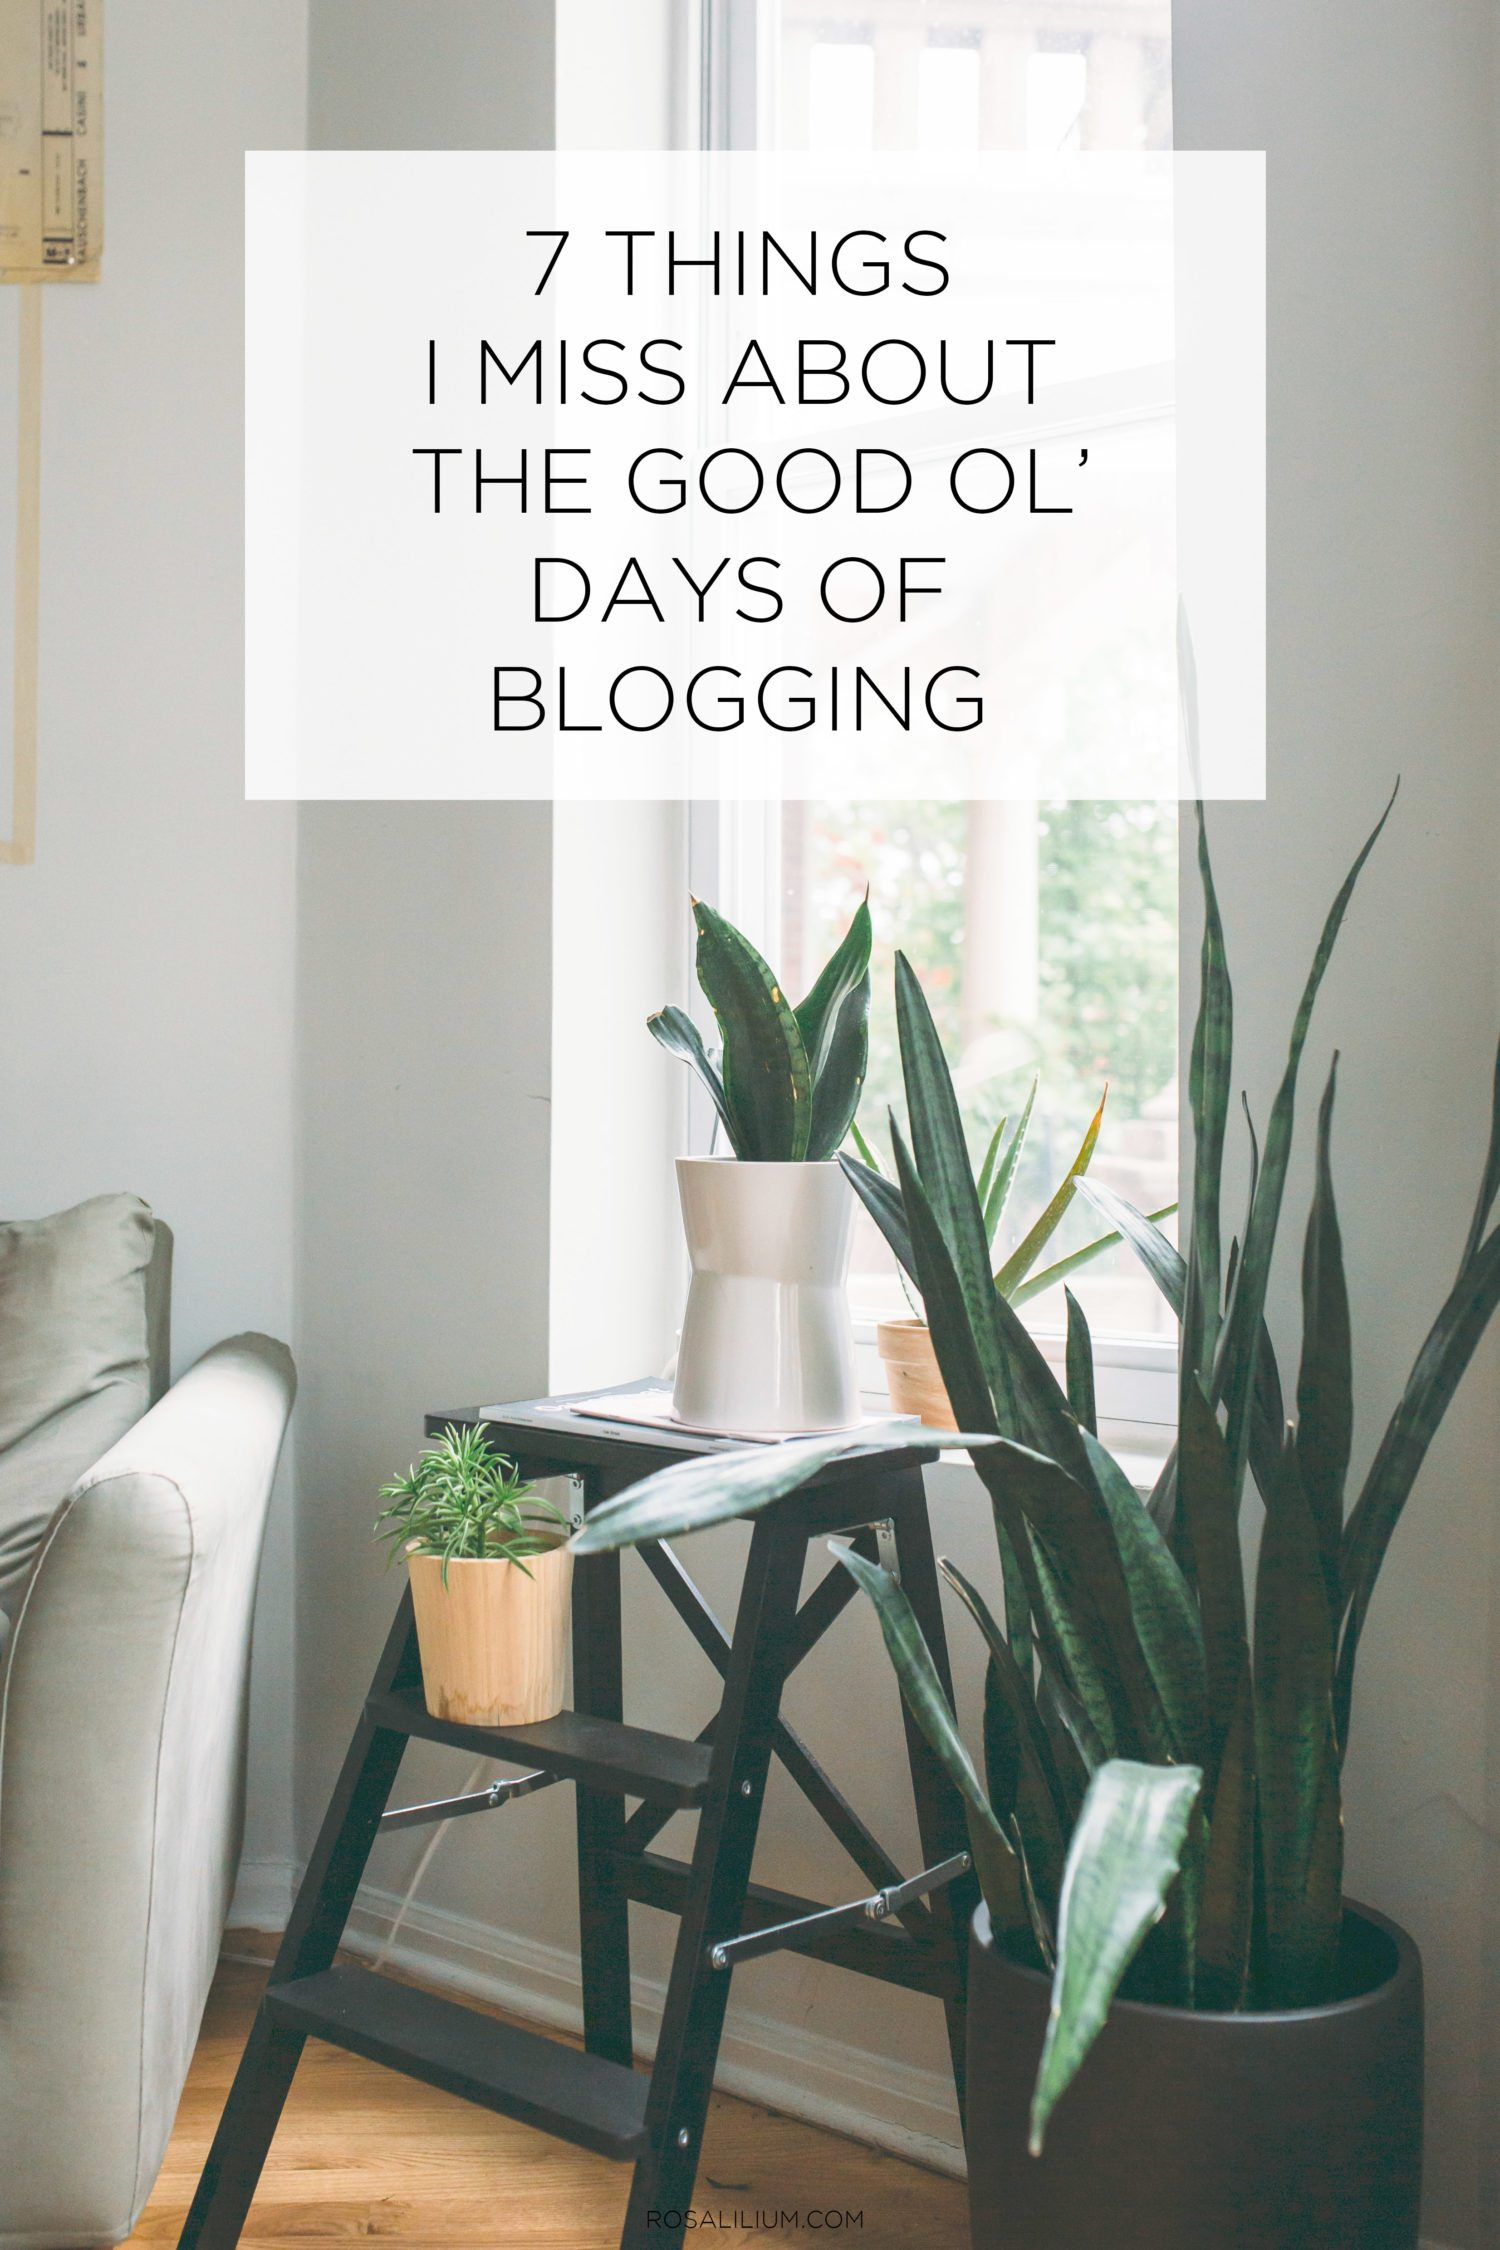 7 Things I Miss About The Good Old Days Of Blogging